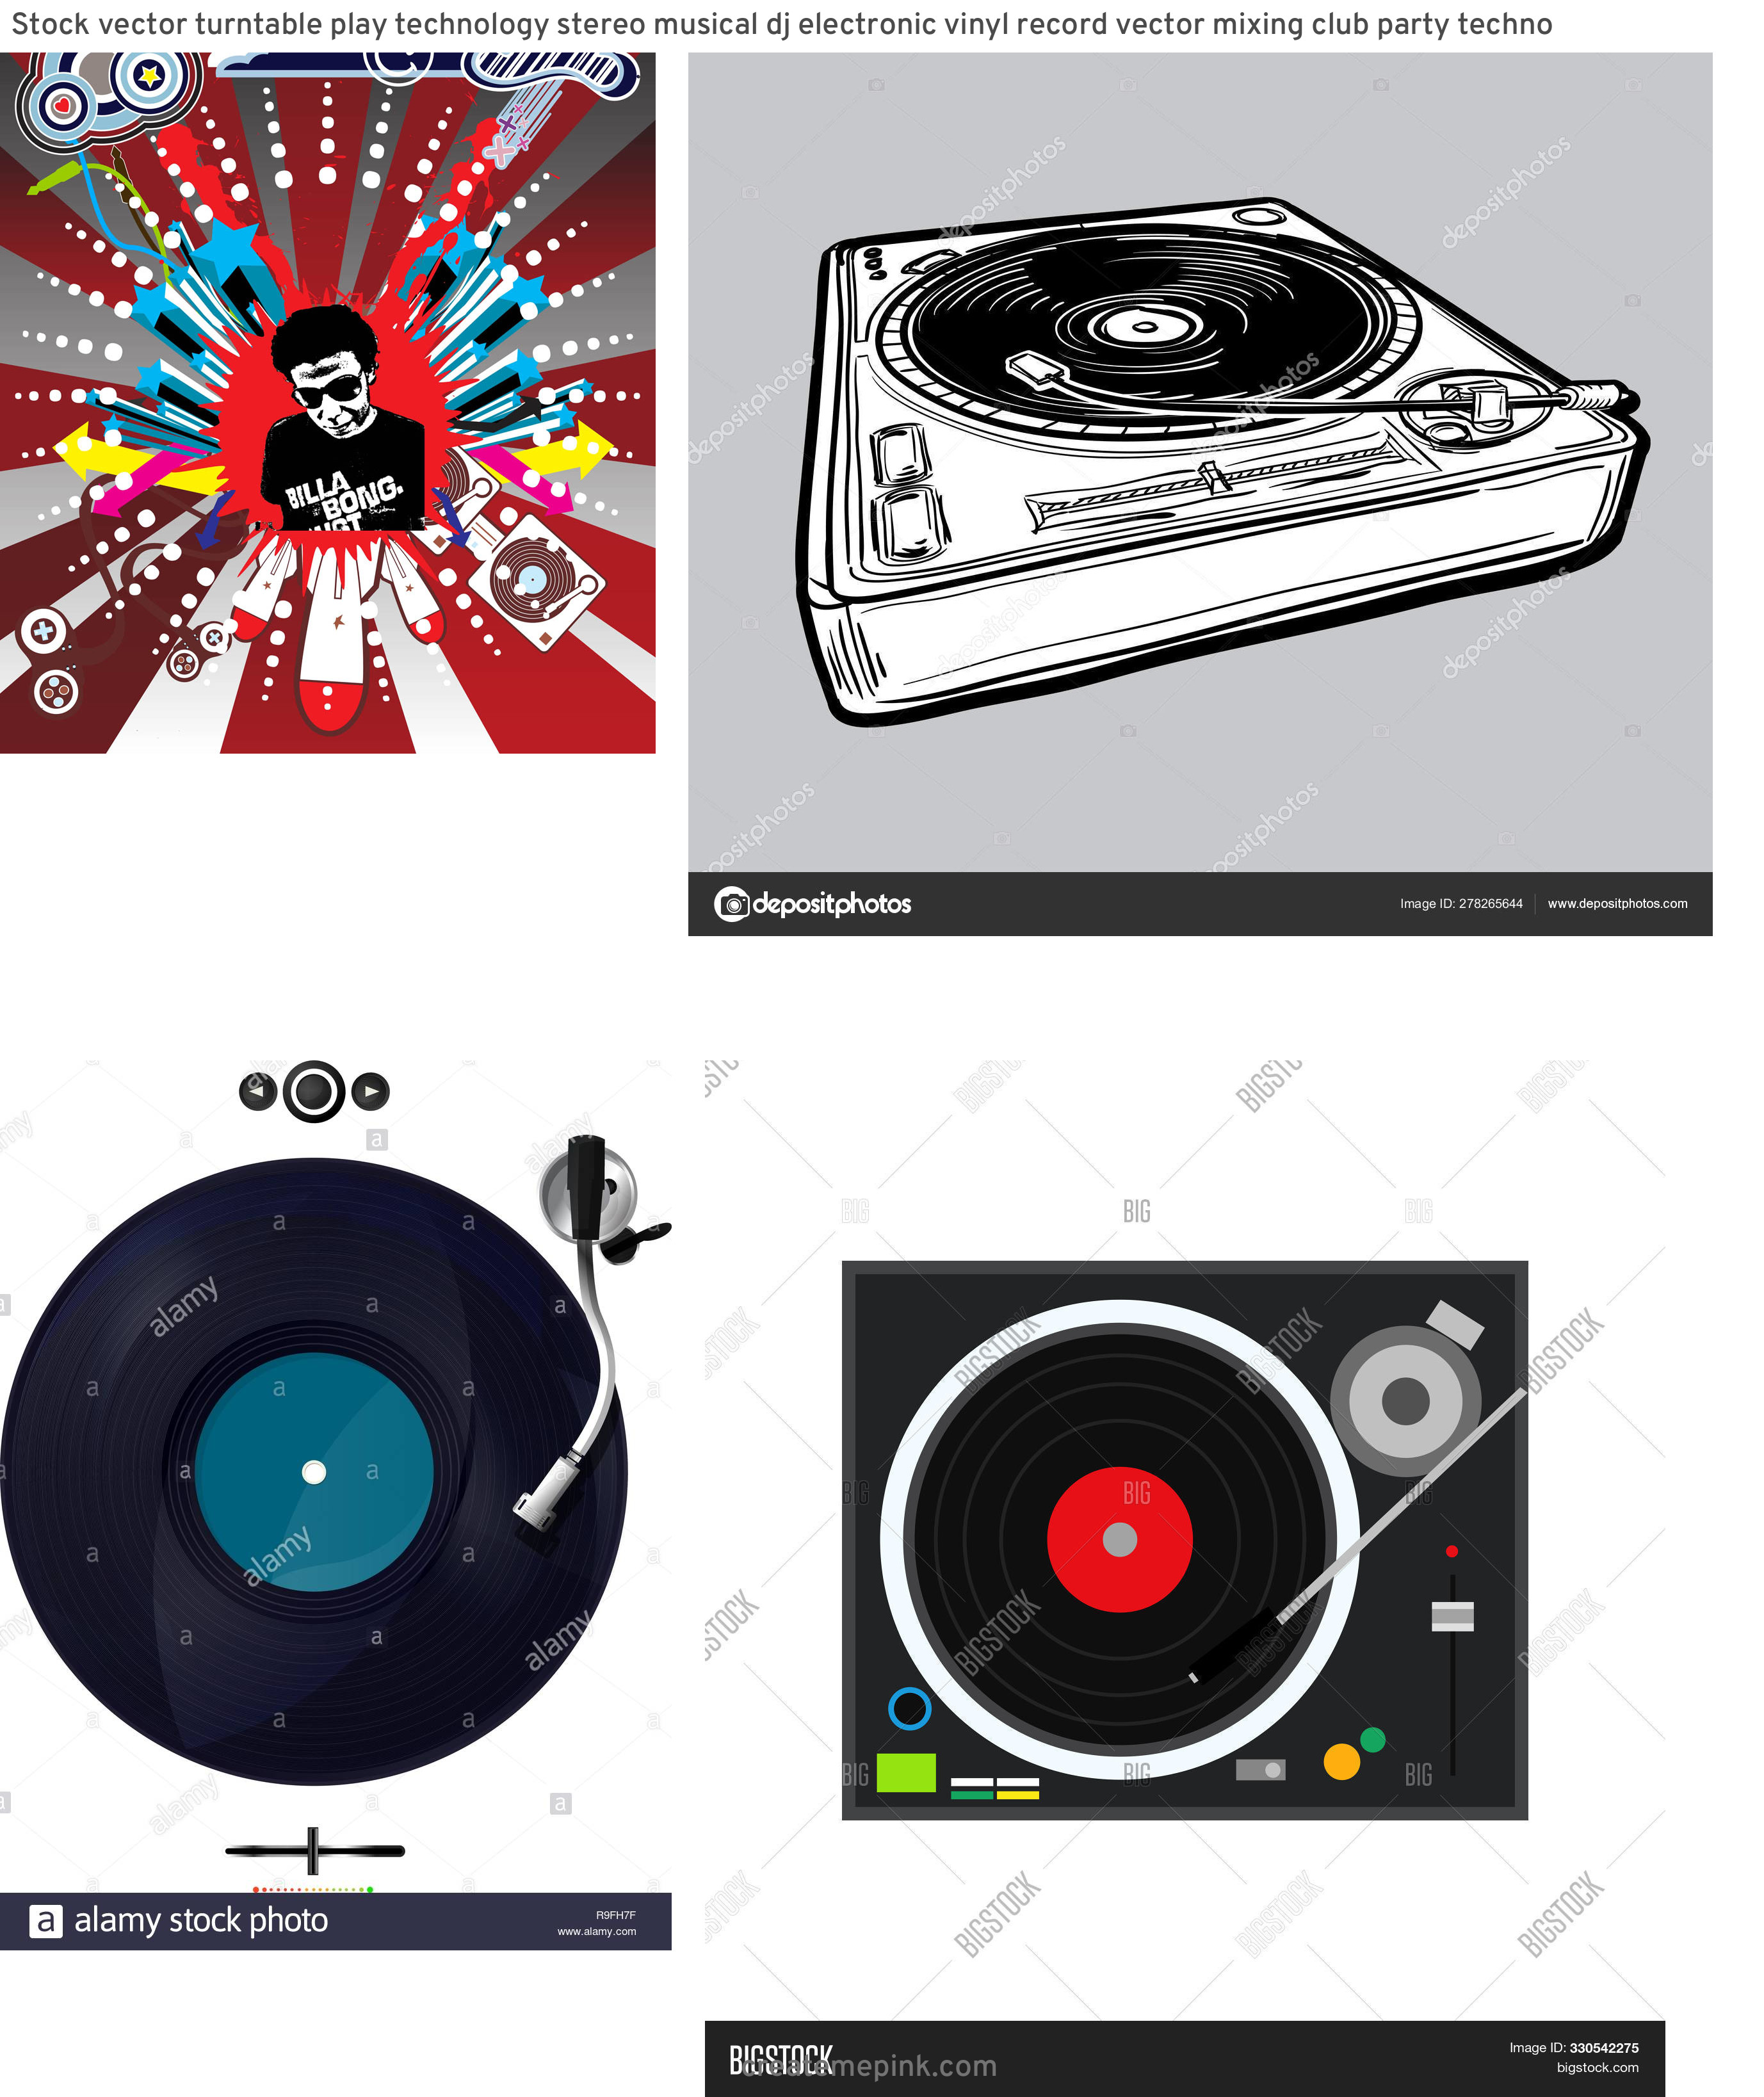 Funk Vector Turntables: Stock Vector Turntable Play Technology Stereo Musical Dj Electronic Vinyl Record Vector Mixing Club Party Techno